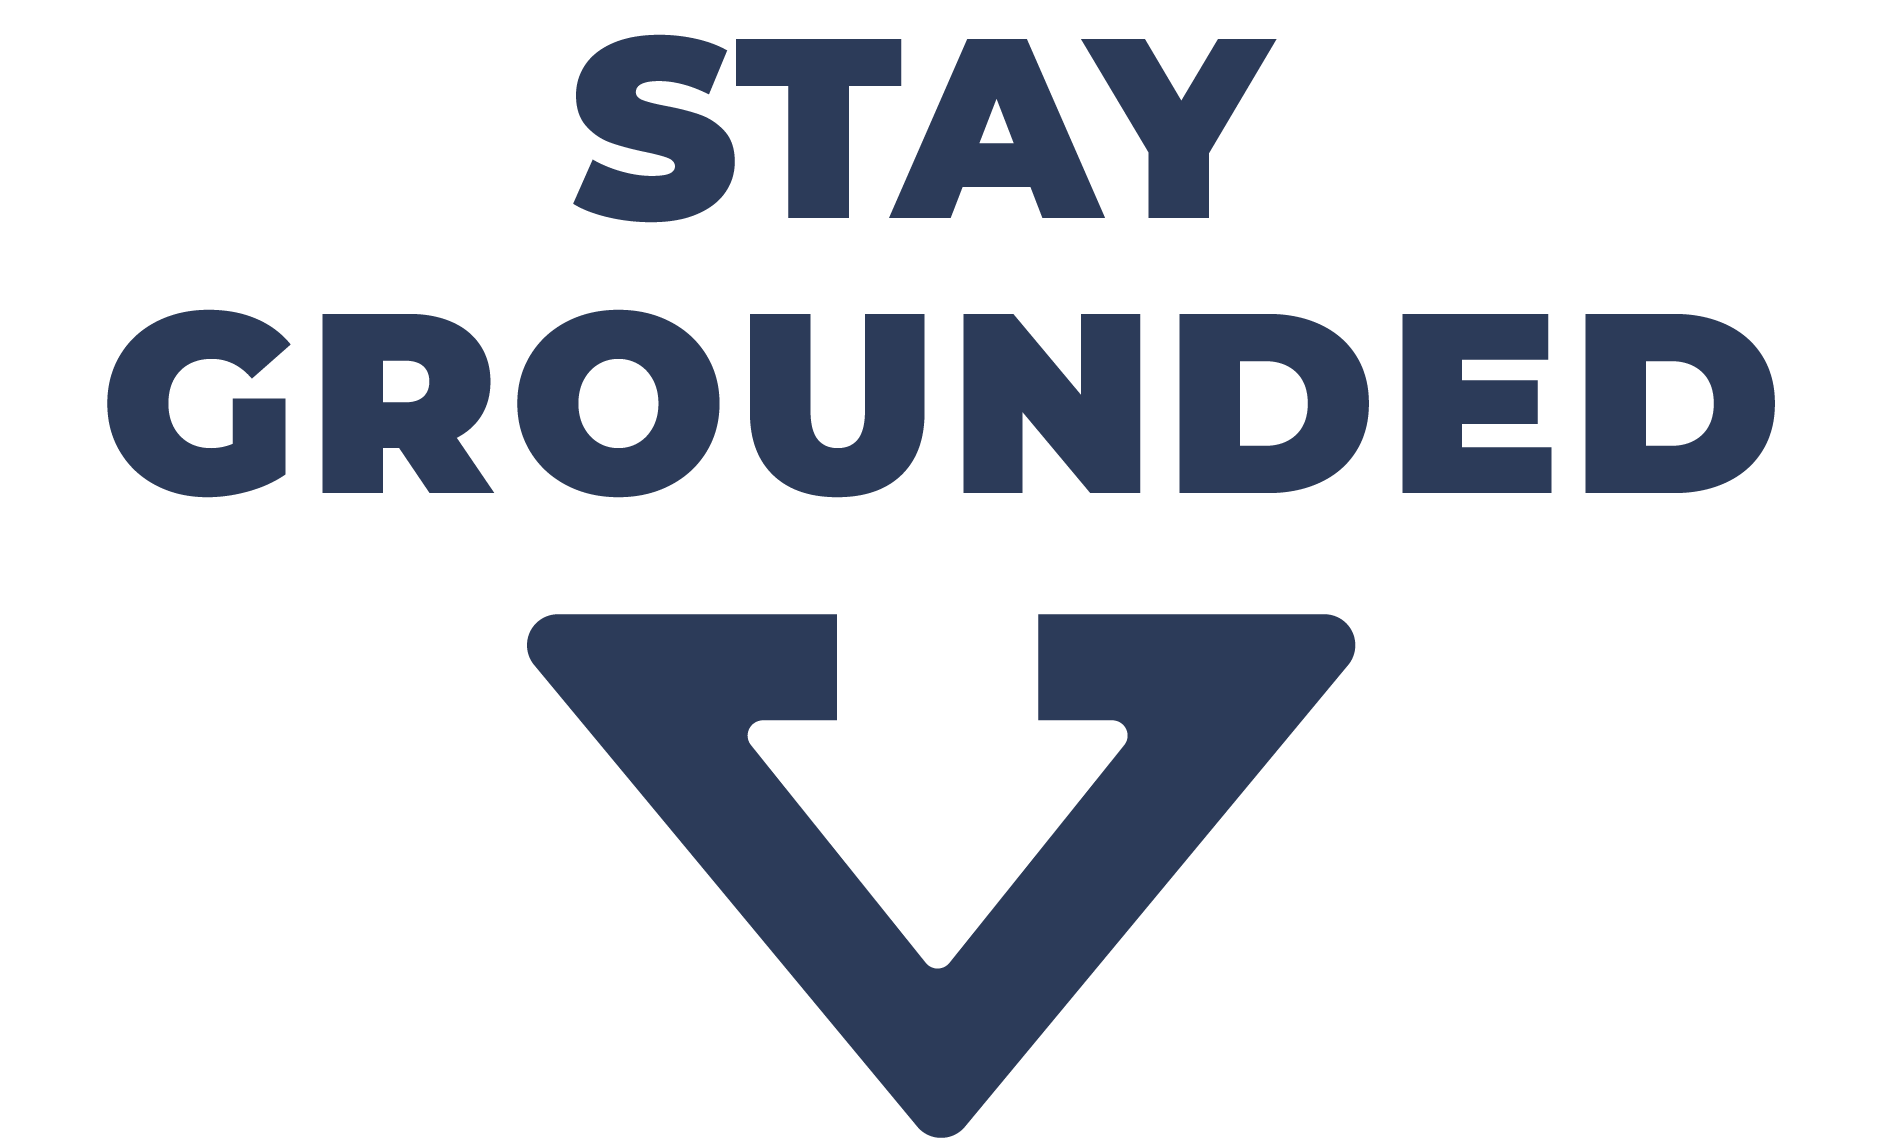 https://stay-grounded.org/index.php?gf-download=2020%2F06%2FSG-Logo-Typo-Blue%402x.png&form-id=9&field-id=27&hash=4caec784089805b5c5c7aed13e757592759713ba67fc2d66f25043303f5042d0